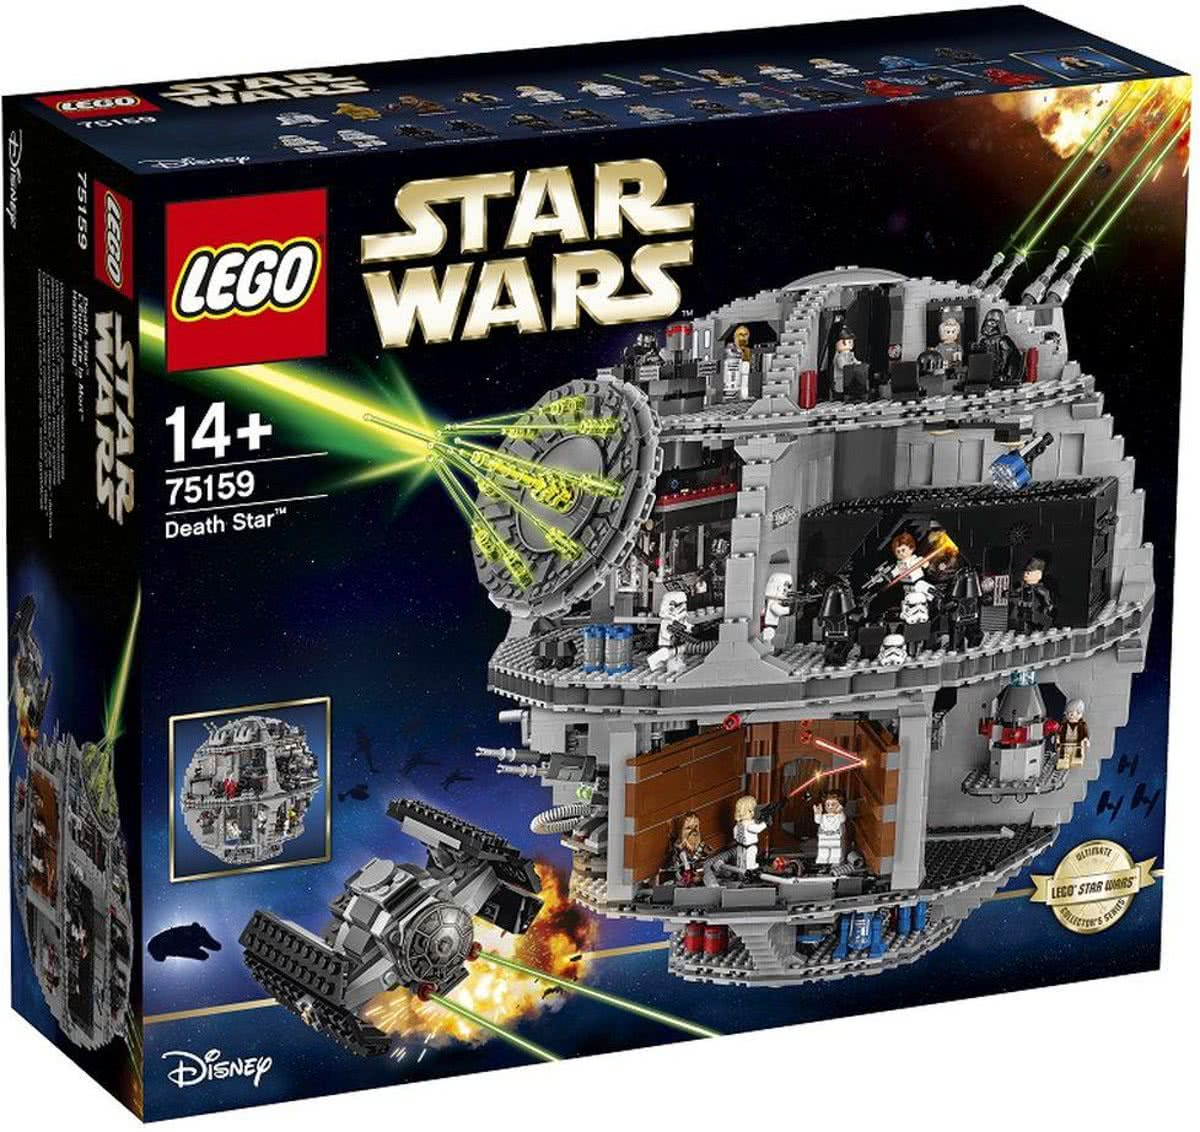 LEGO Star Wars Death Star - 75159